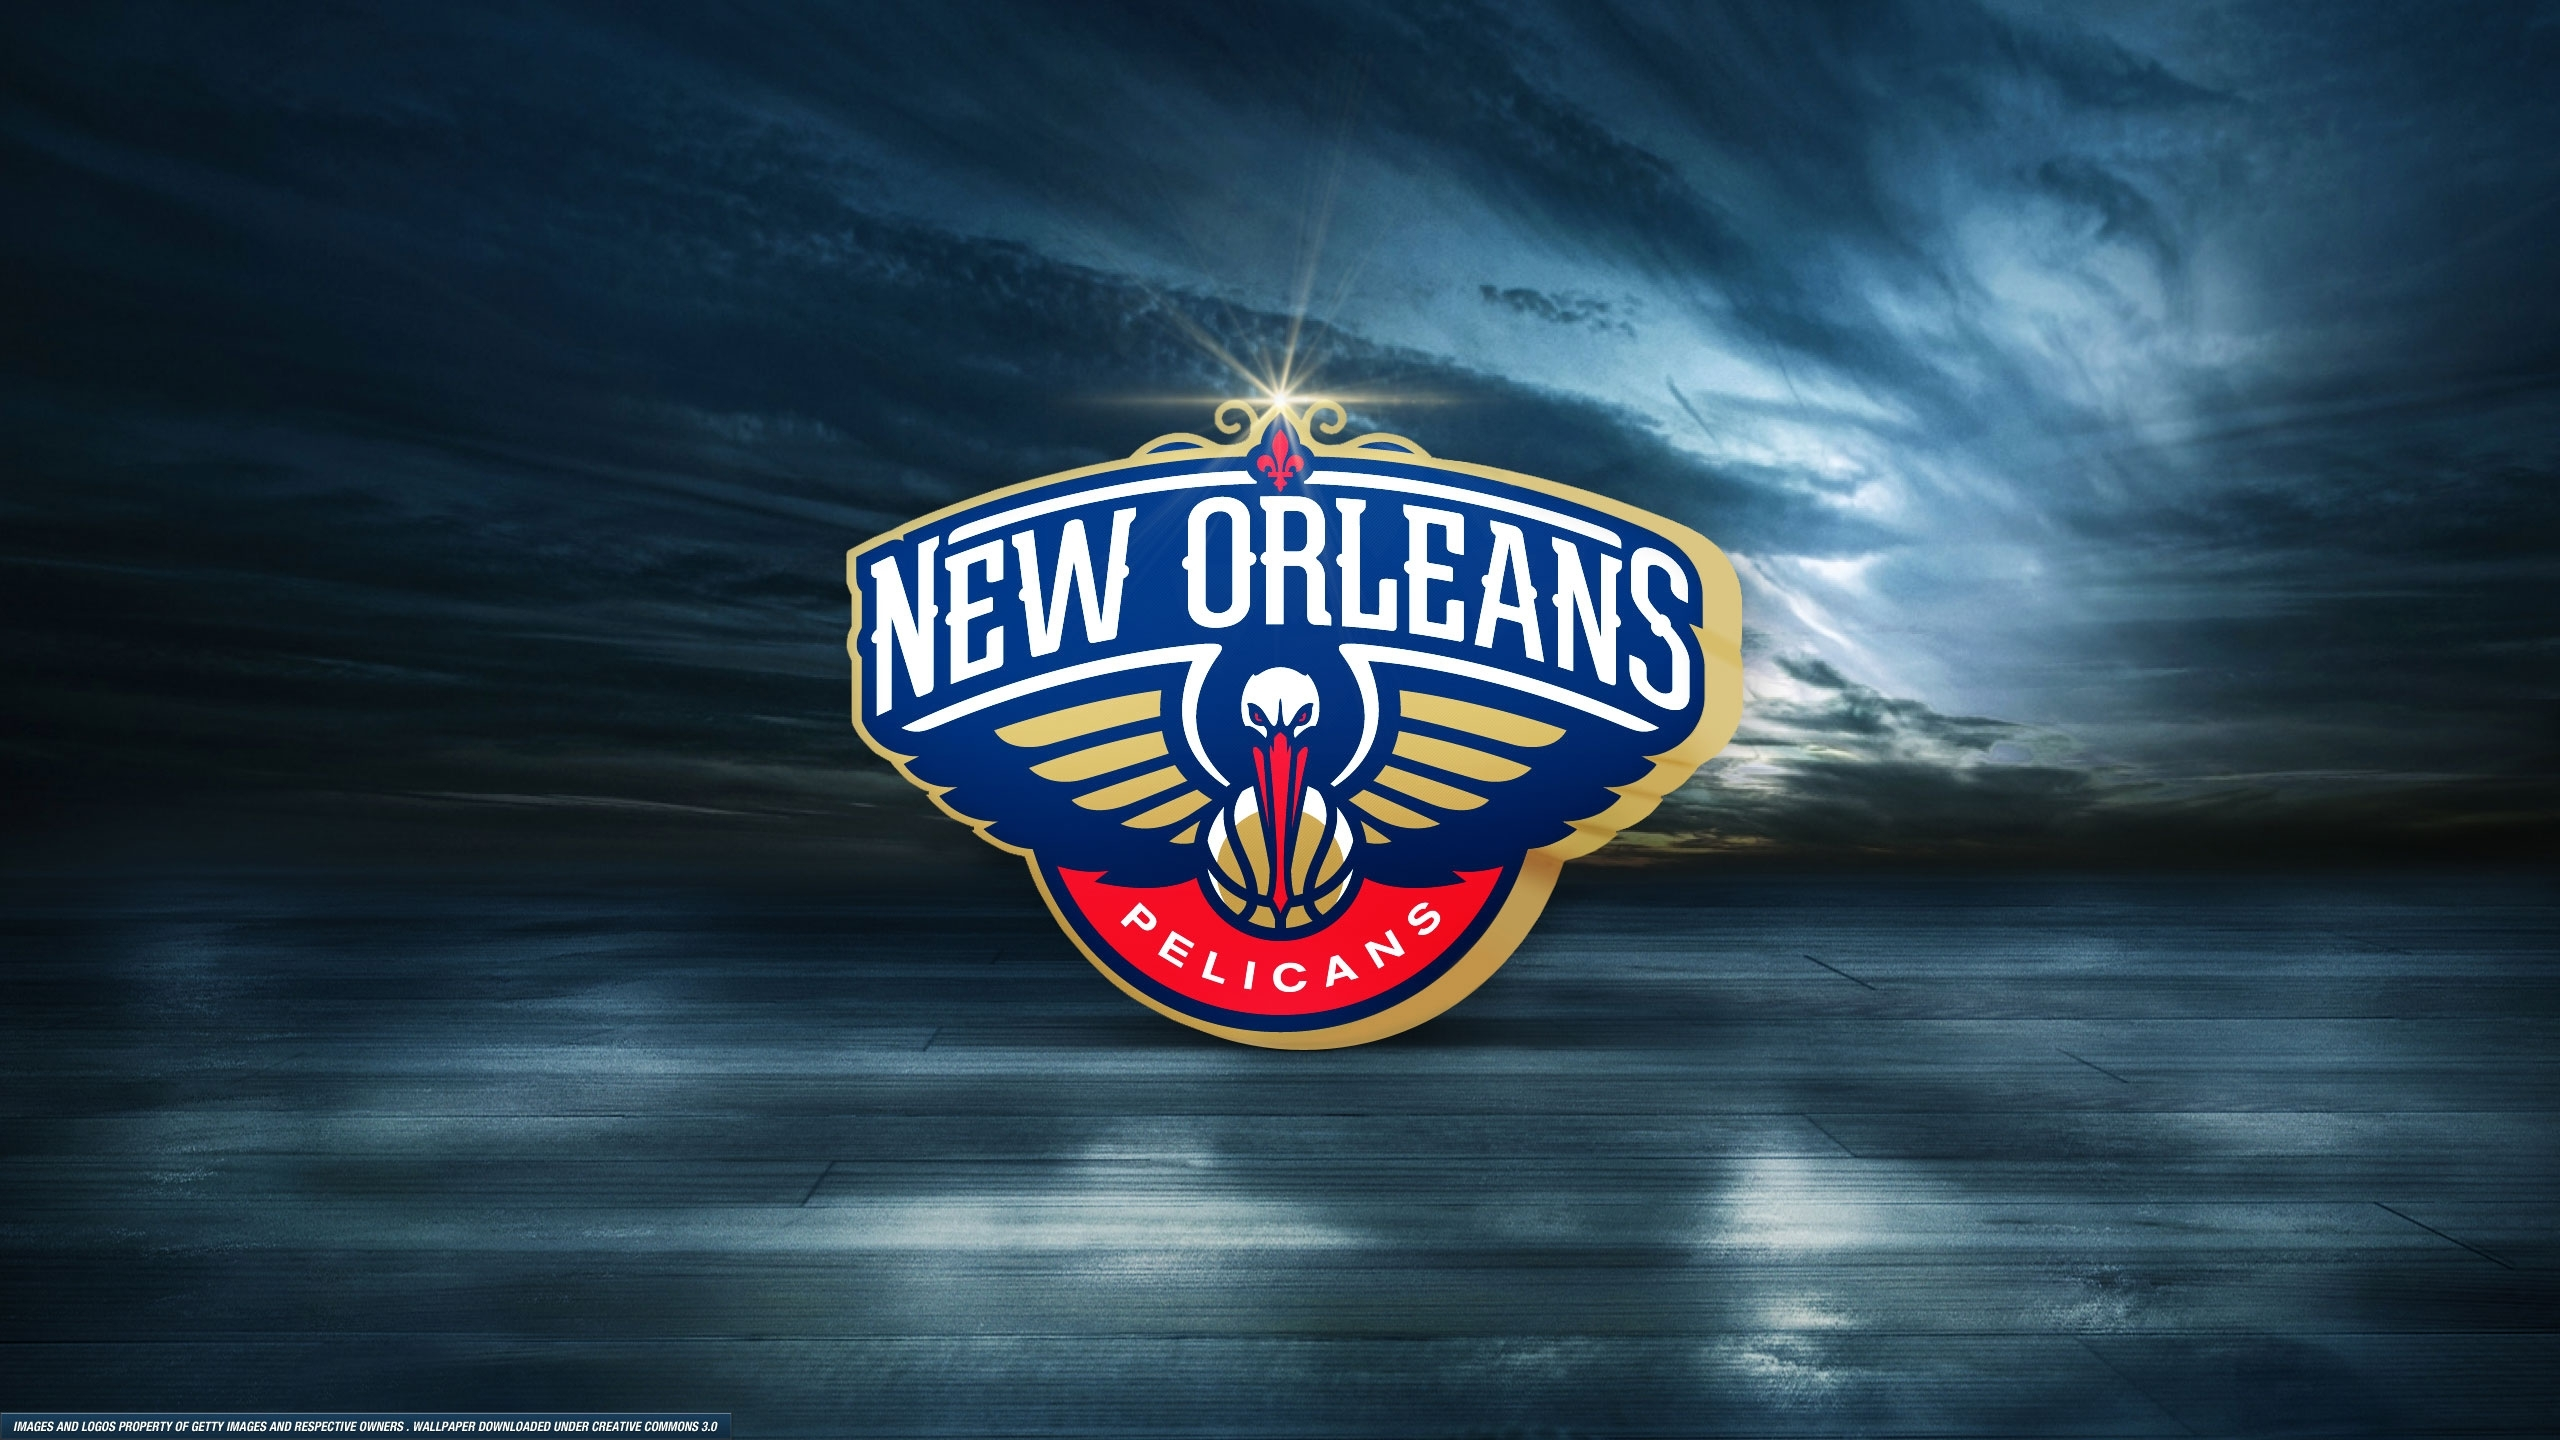 new orleans pelicans wallpapers | basketball wallpapers at